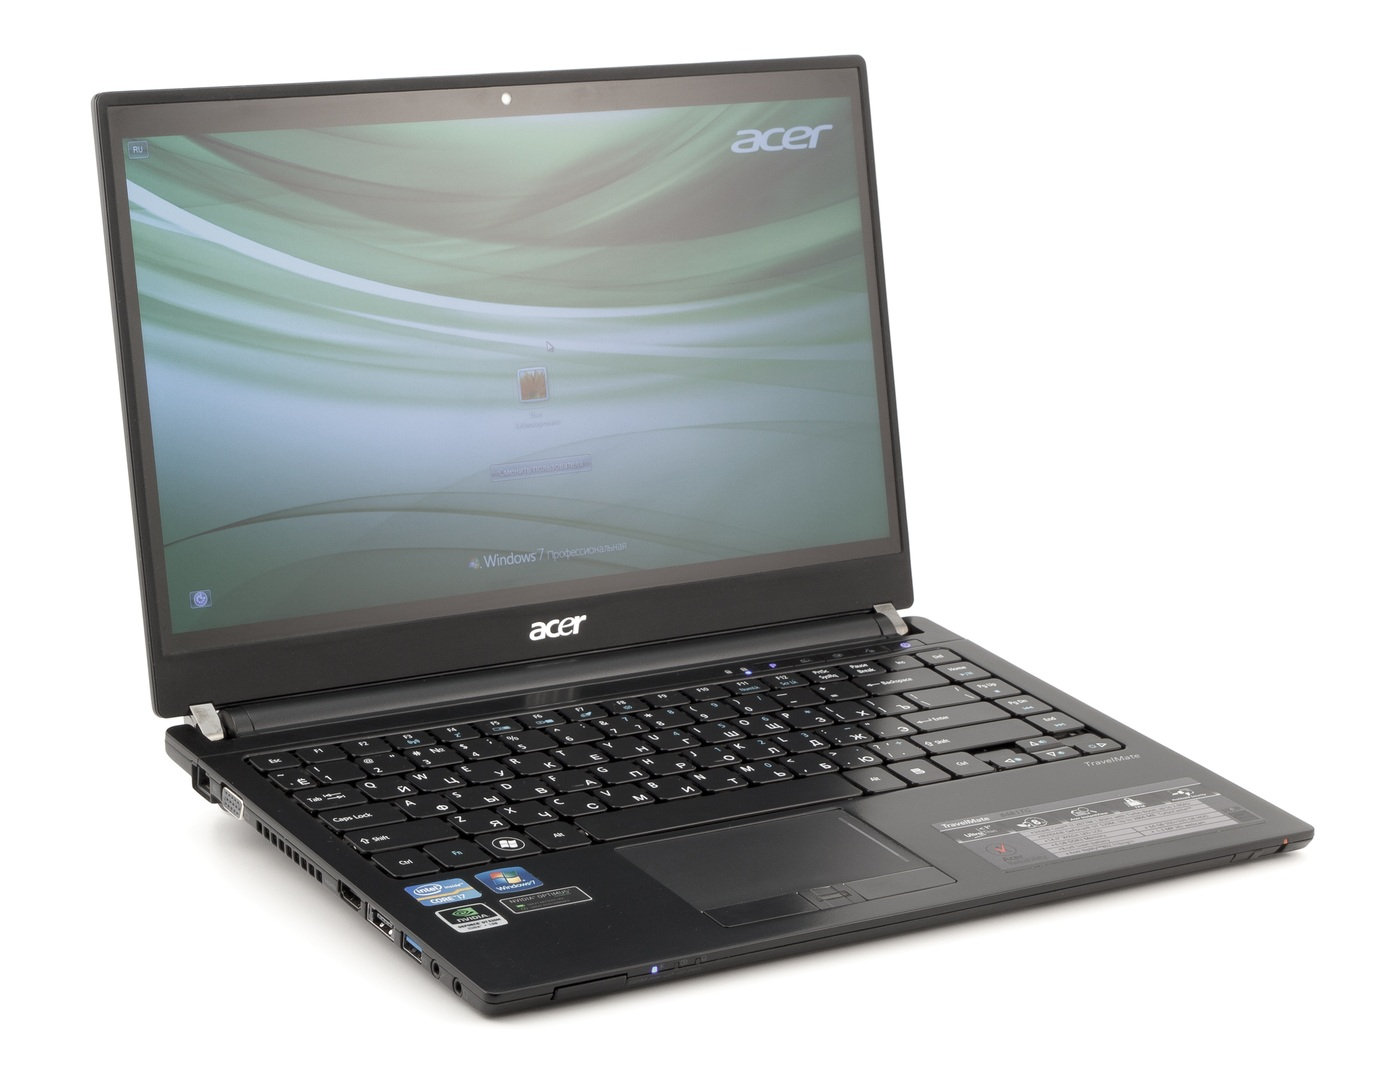 ACER TRAVELMATE 8481 DOWNLOAD DRIVERS